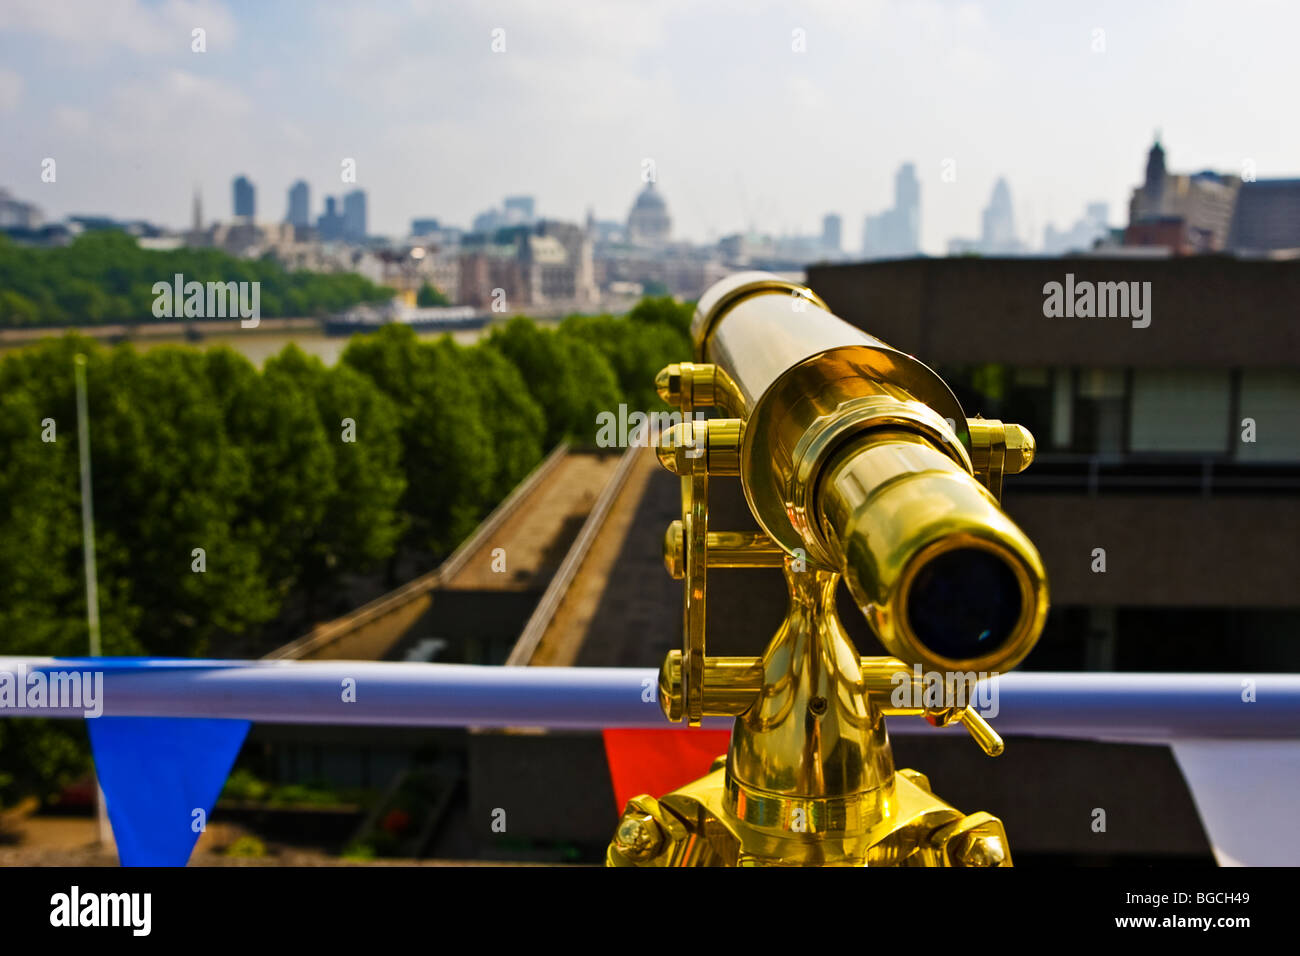 Looking down the eyepiece of a telescope with view over London city and the Thames on Southbank - Stock Image